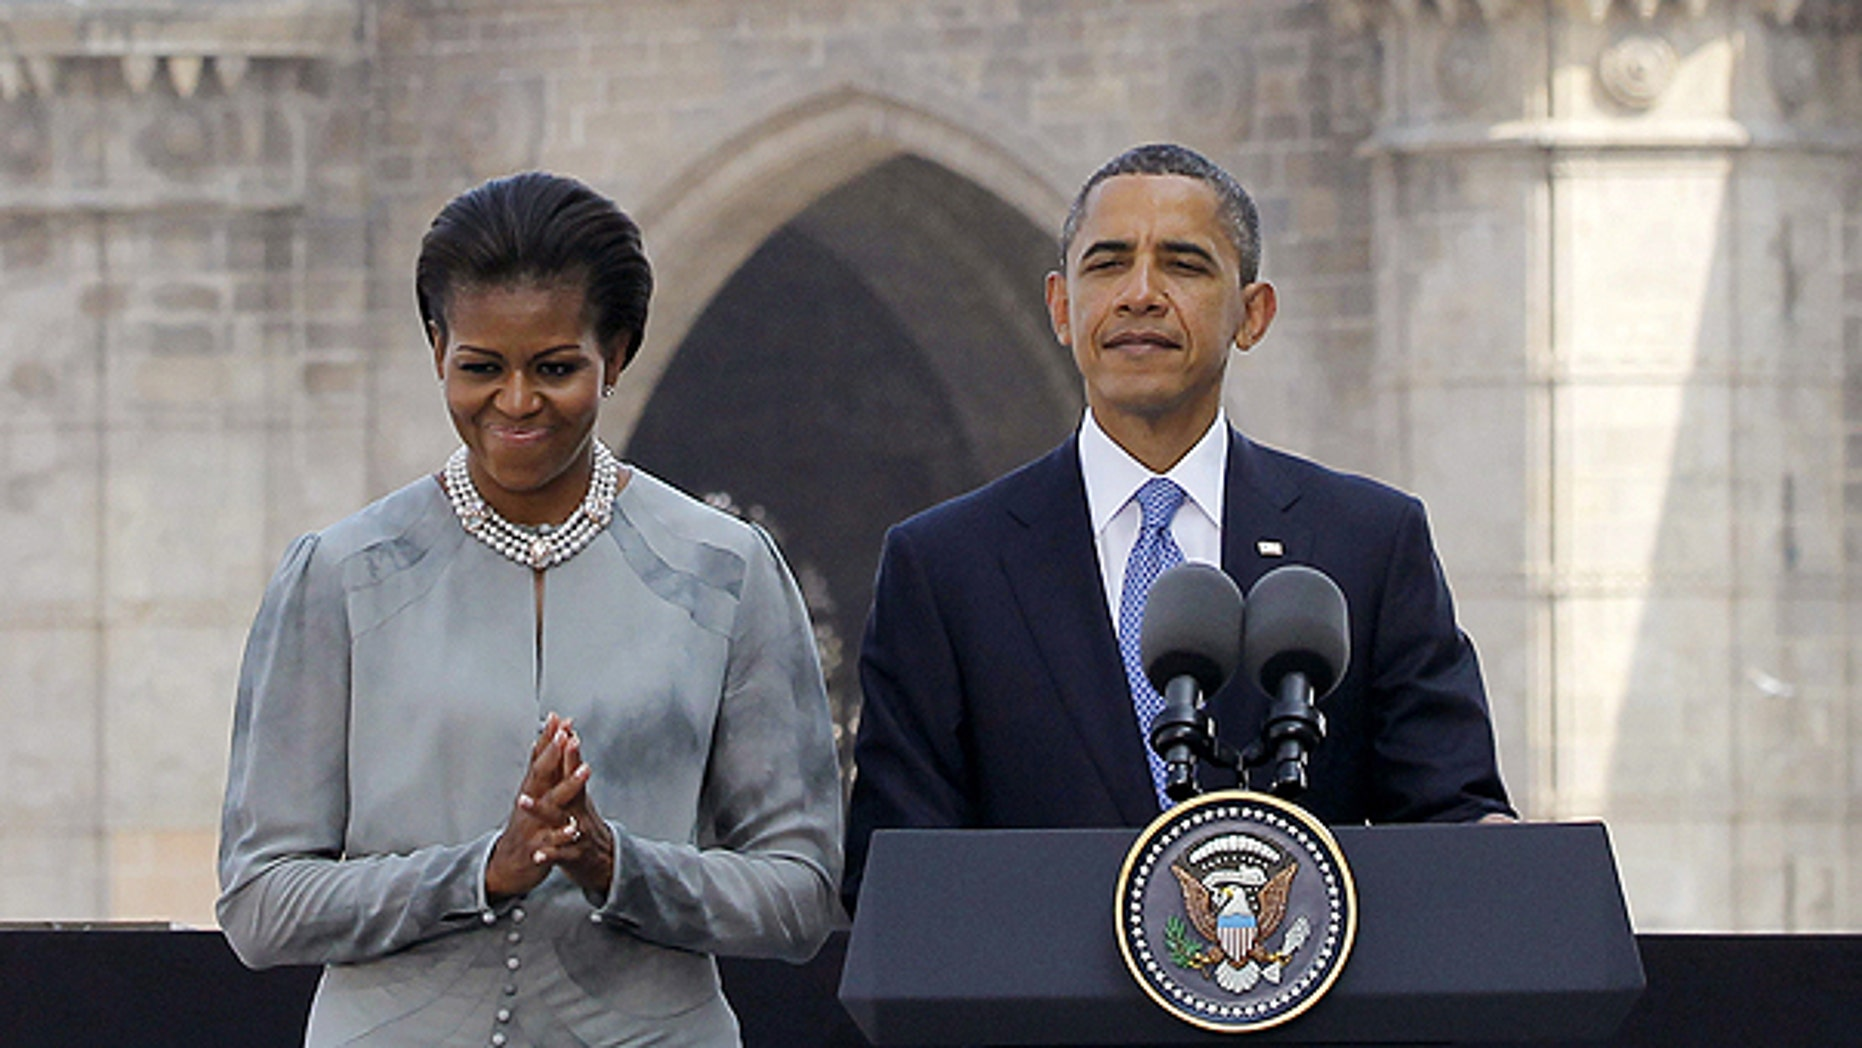 Nov. 6: President Obama and first lady Michelle Obama make a statement after their visit the memorial for the Nov. 26, 2008 terror attack victims at the Taj Mahal Palace and Tower Hotel in Mumbai, India.